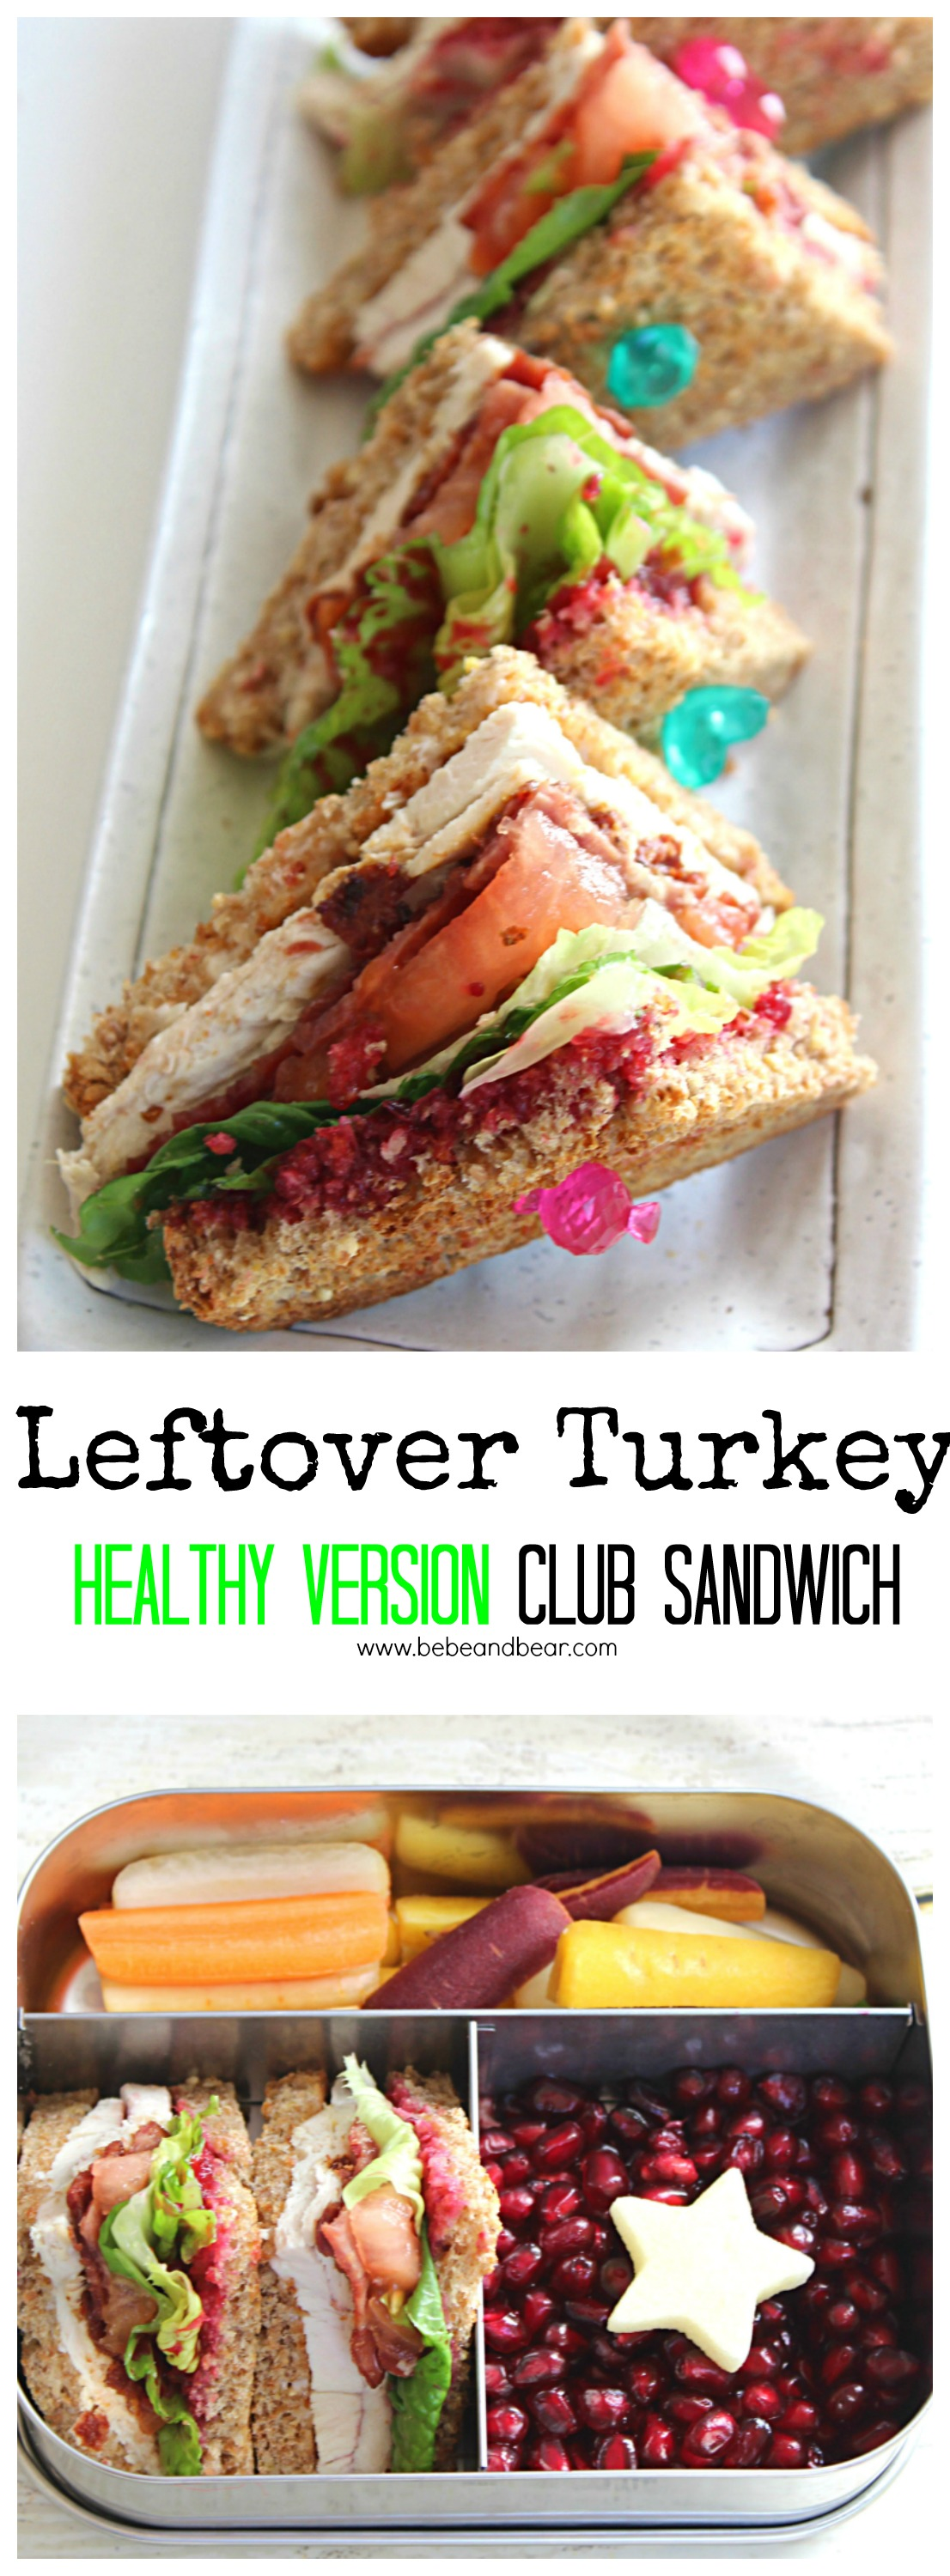 Leftover Turkey: Healthy Version Club sandwich with turkey bacon, veganaise and sprouted bread.